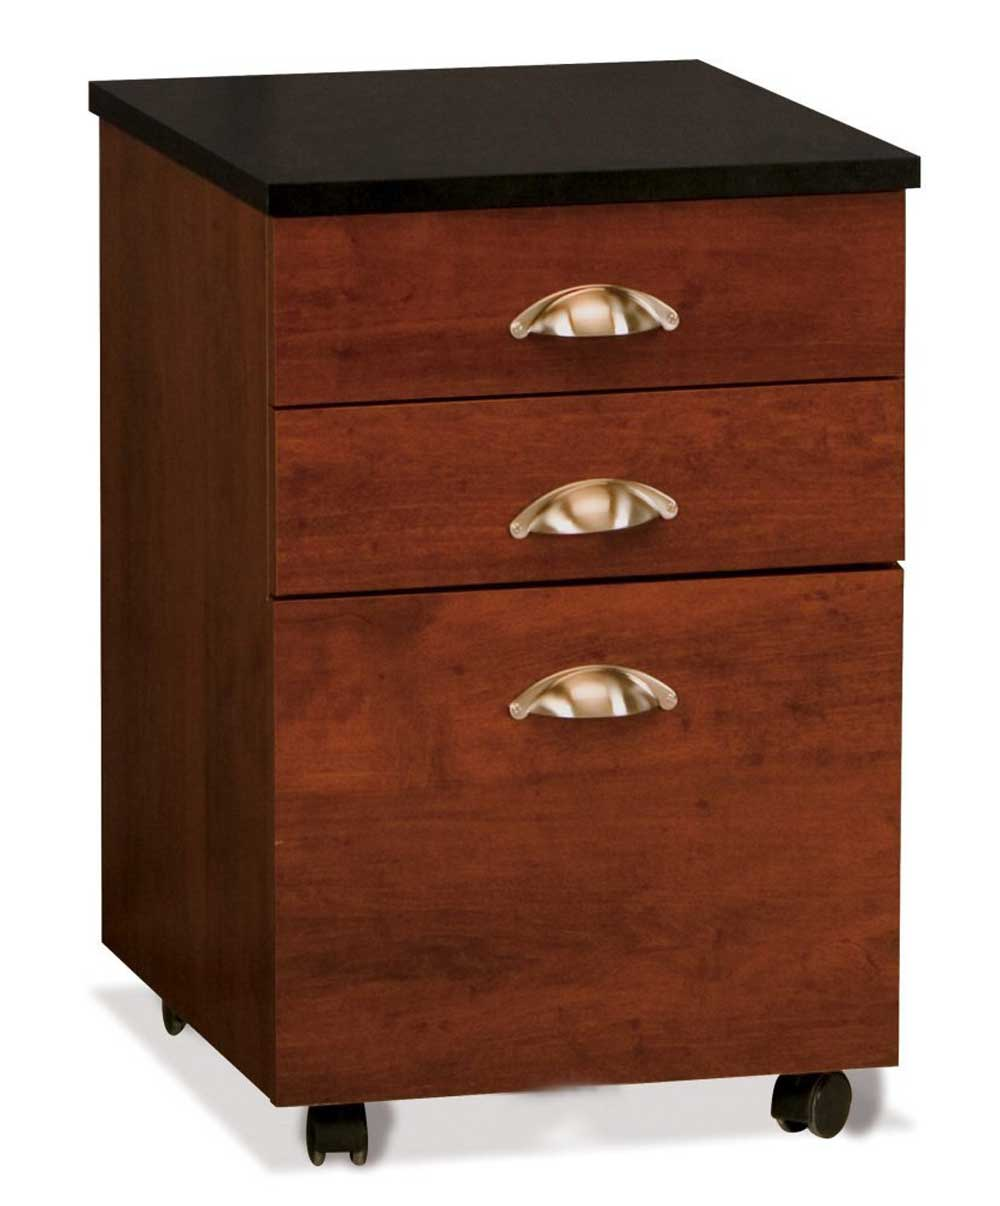 Yeskey Three Drawers Wooden Mobile File Cabinets